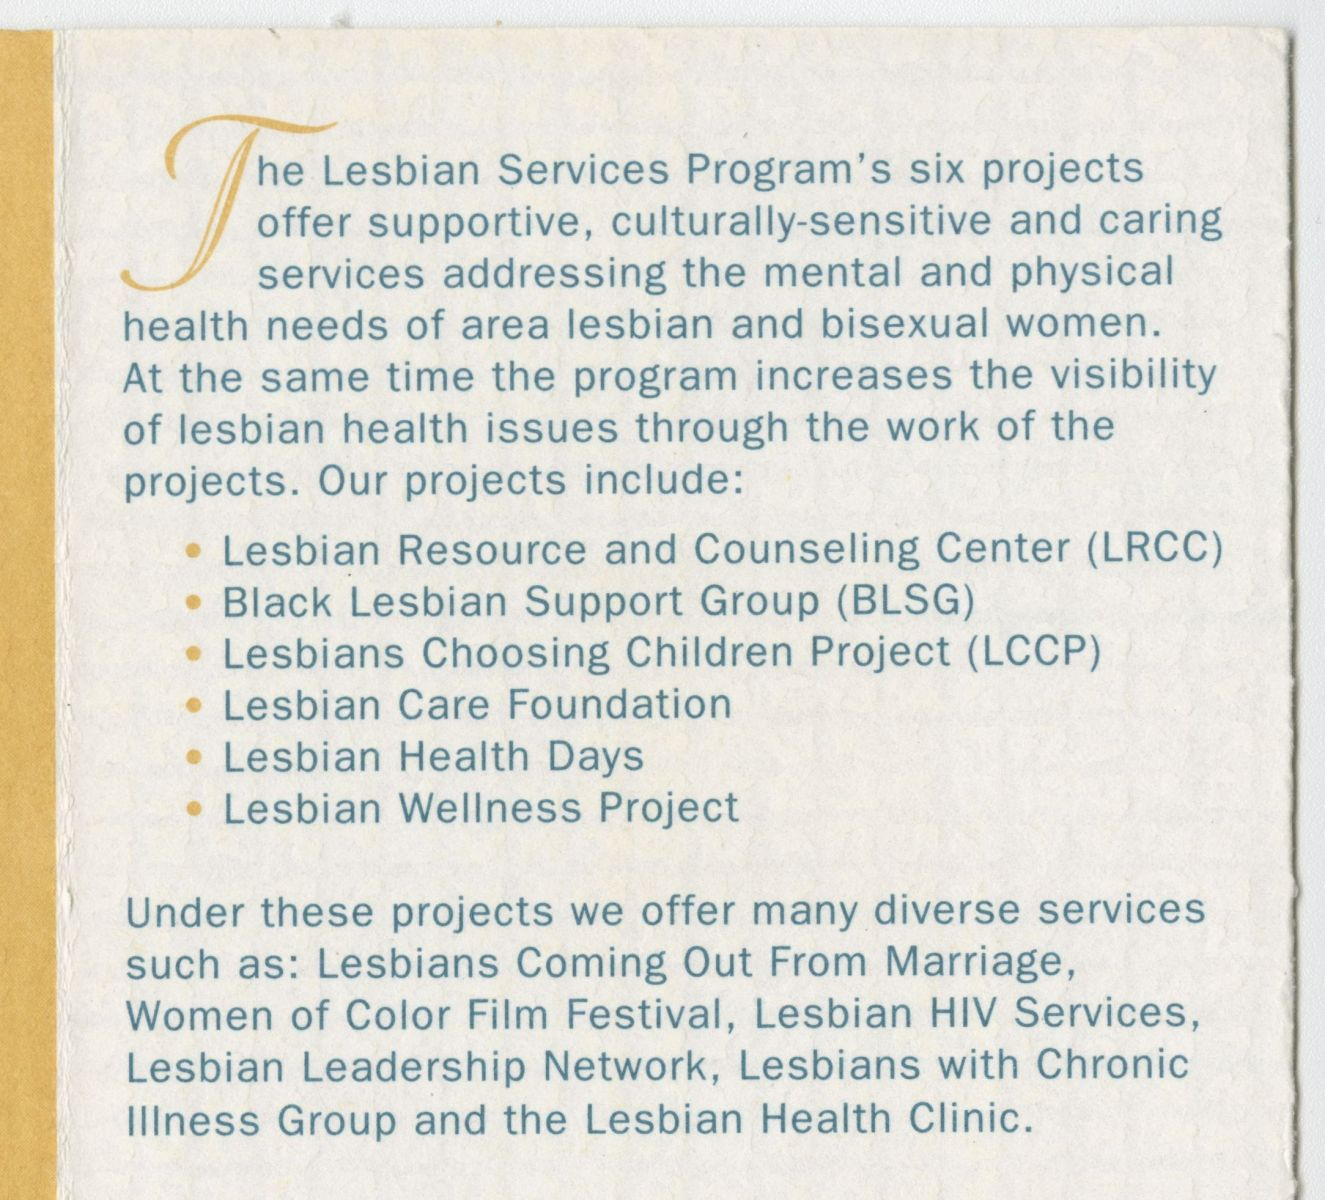 Excerpt from pamphlet invitation. Blue text on a white background with yellow accents lists the services offered through the Whitman-Walker Clinic's Lesbian Services Program.